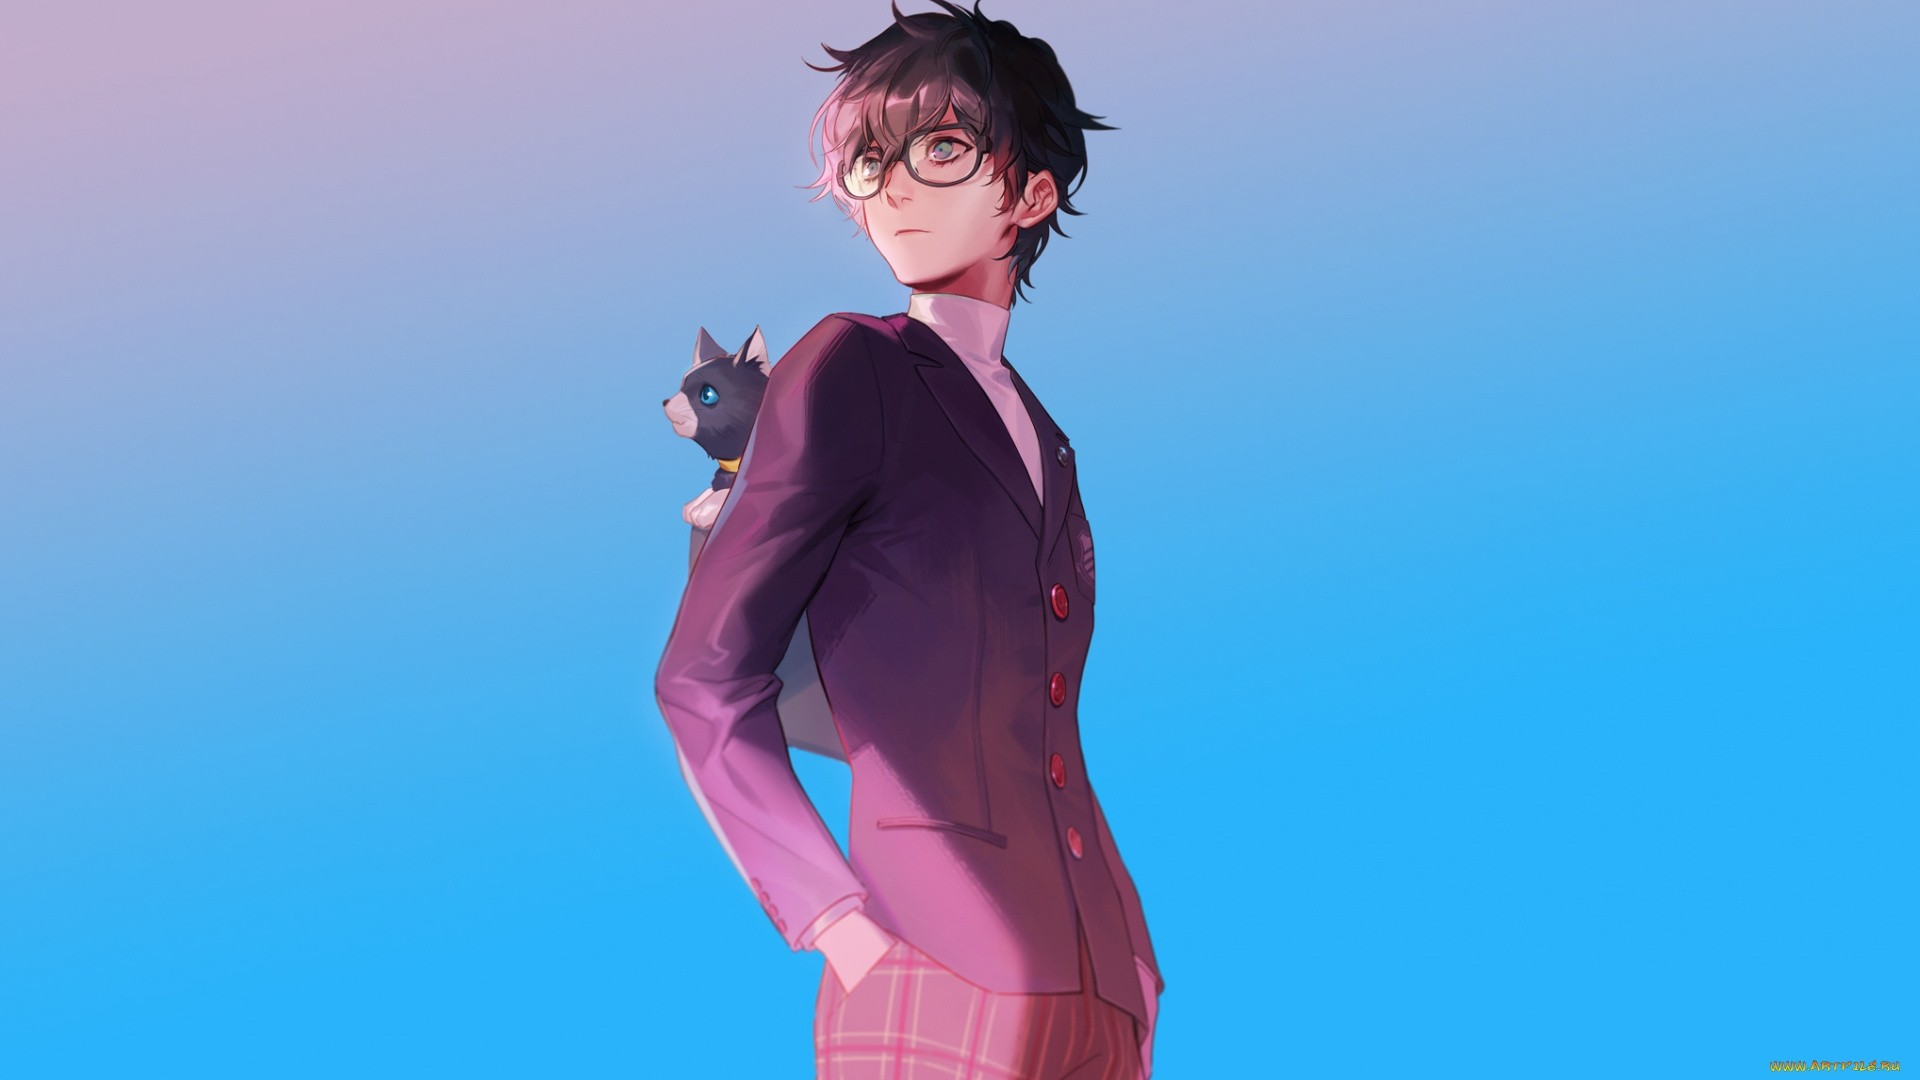 Anime Guy With Glasses Free Wallpaper and Background